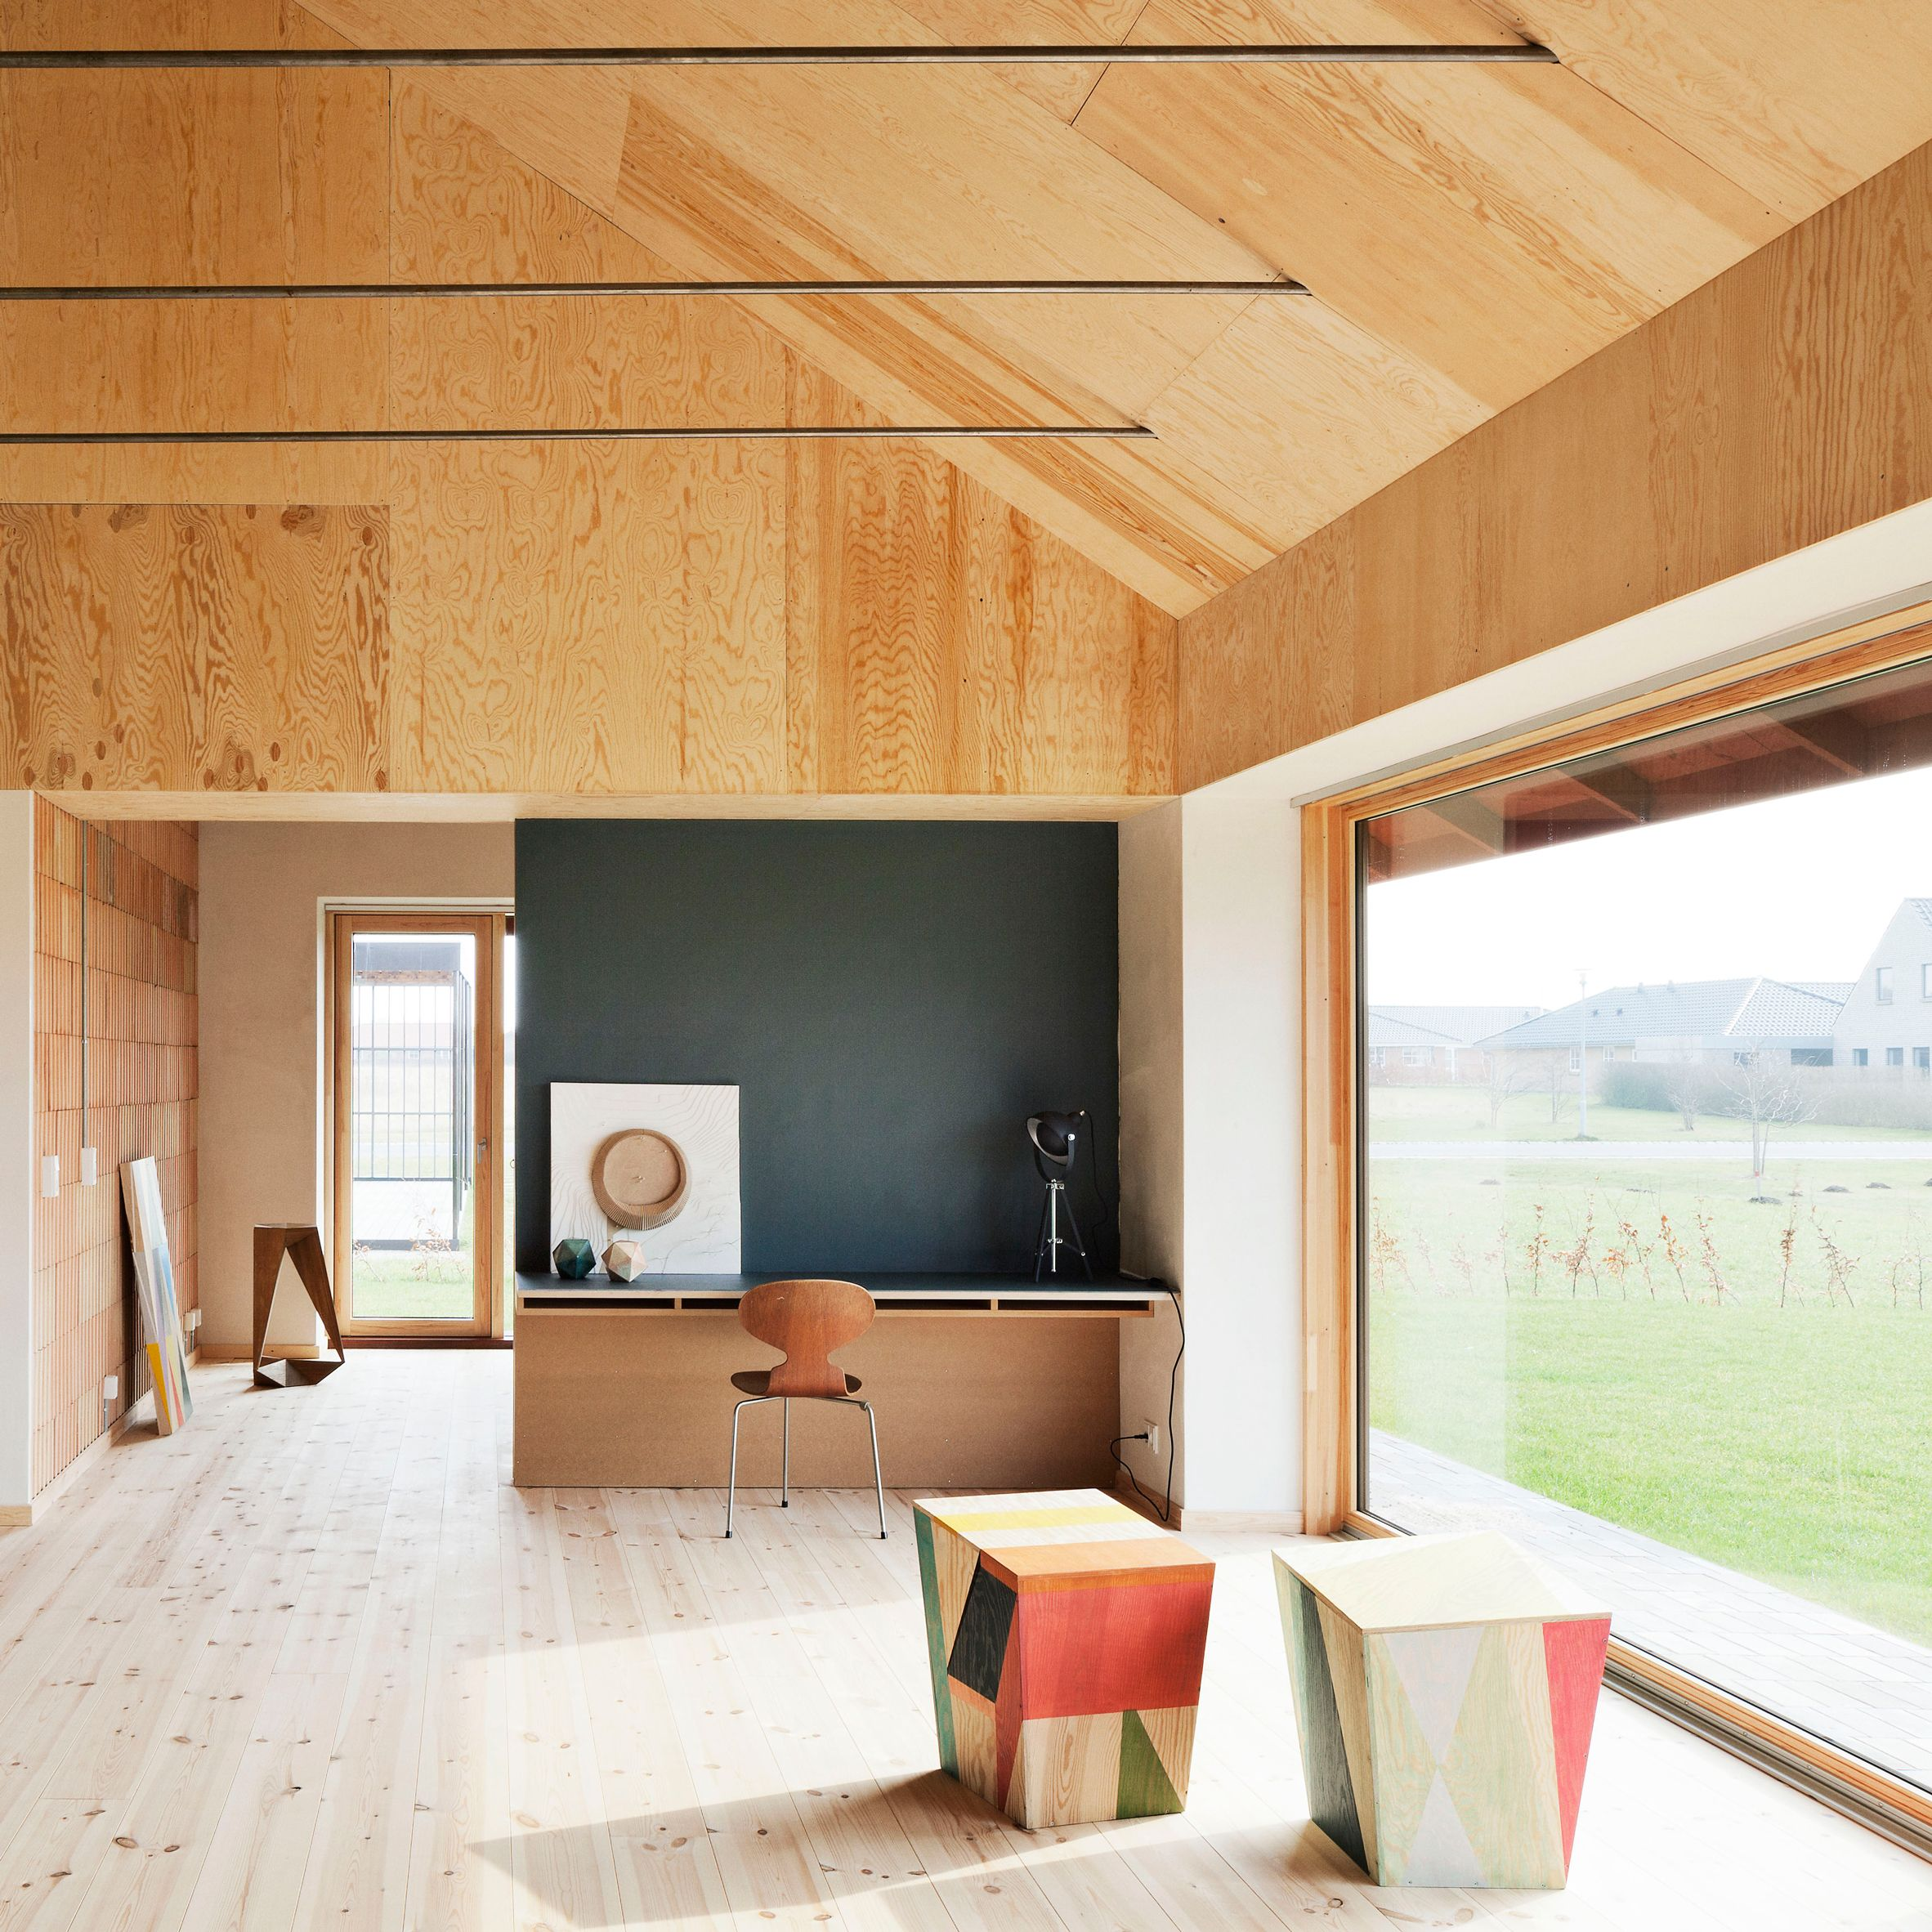 Plywood Walls And A Wide Window In This Contemporary Home In Denmark Brick House By Leth Brick House Interior Architecture Design Scandinavian Home Interiors